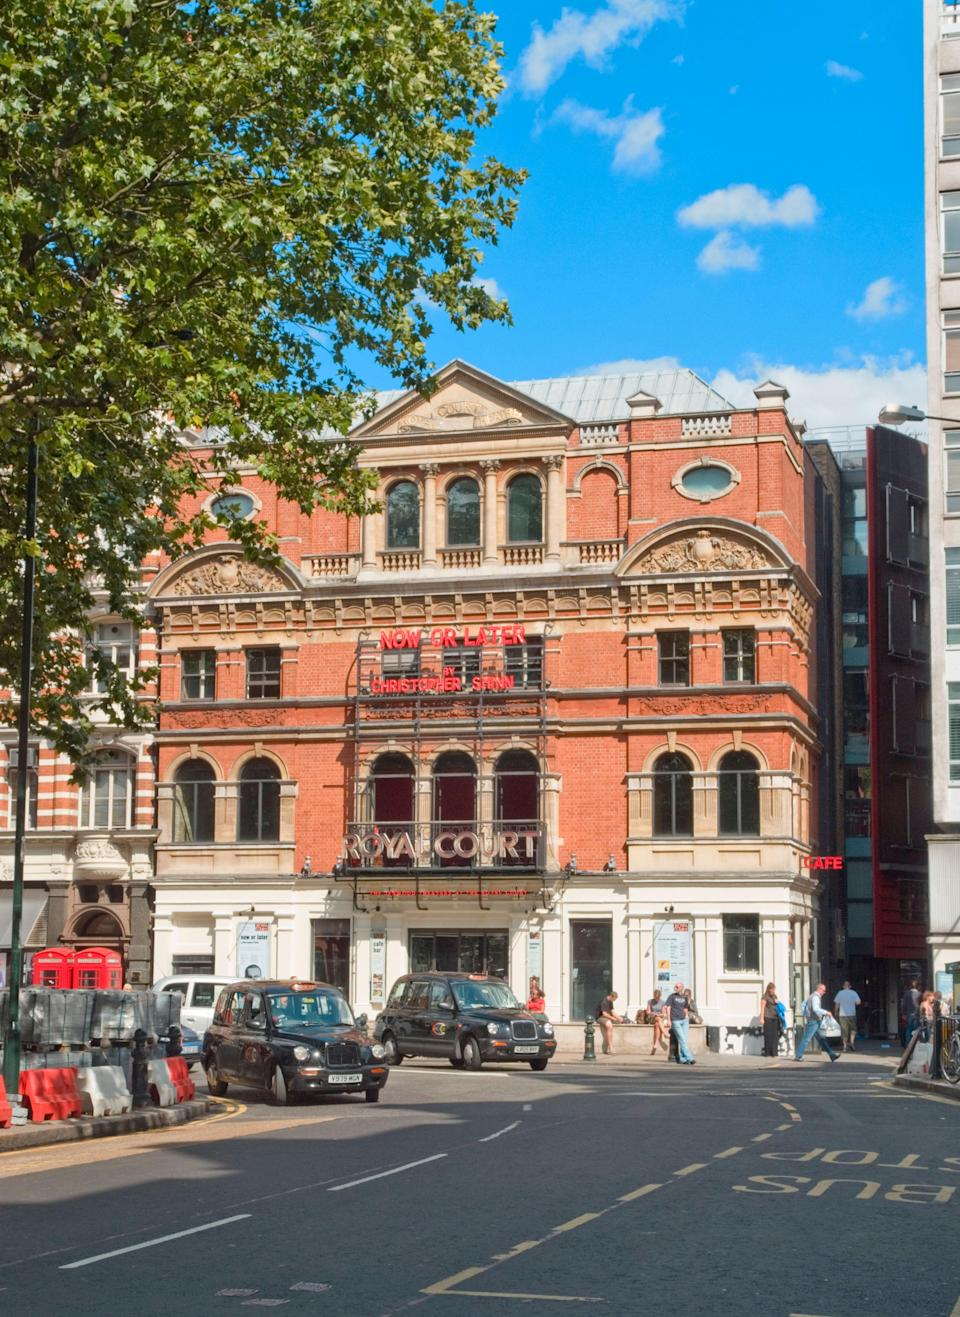 The Royal Court Theatre (Alamy Stock Photo)